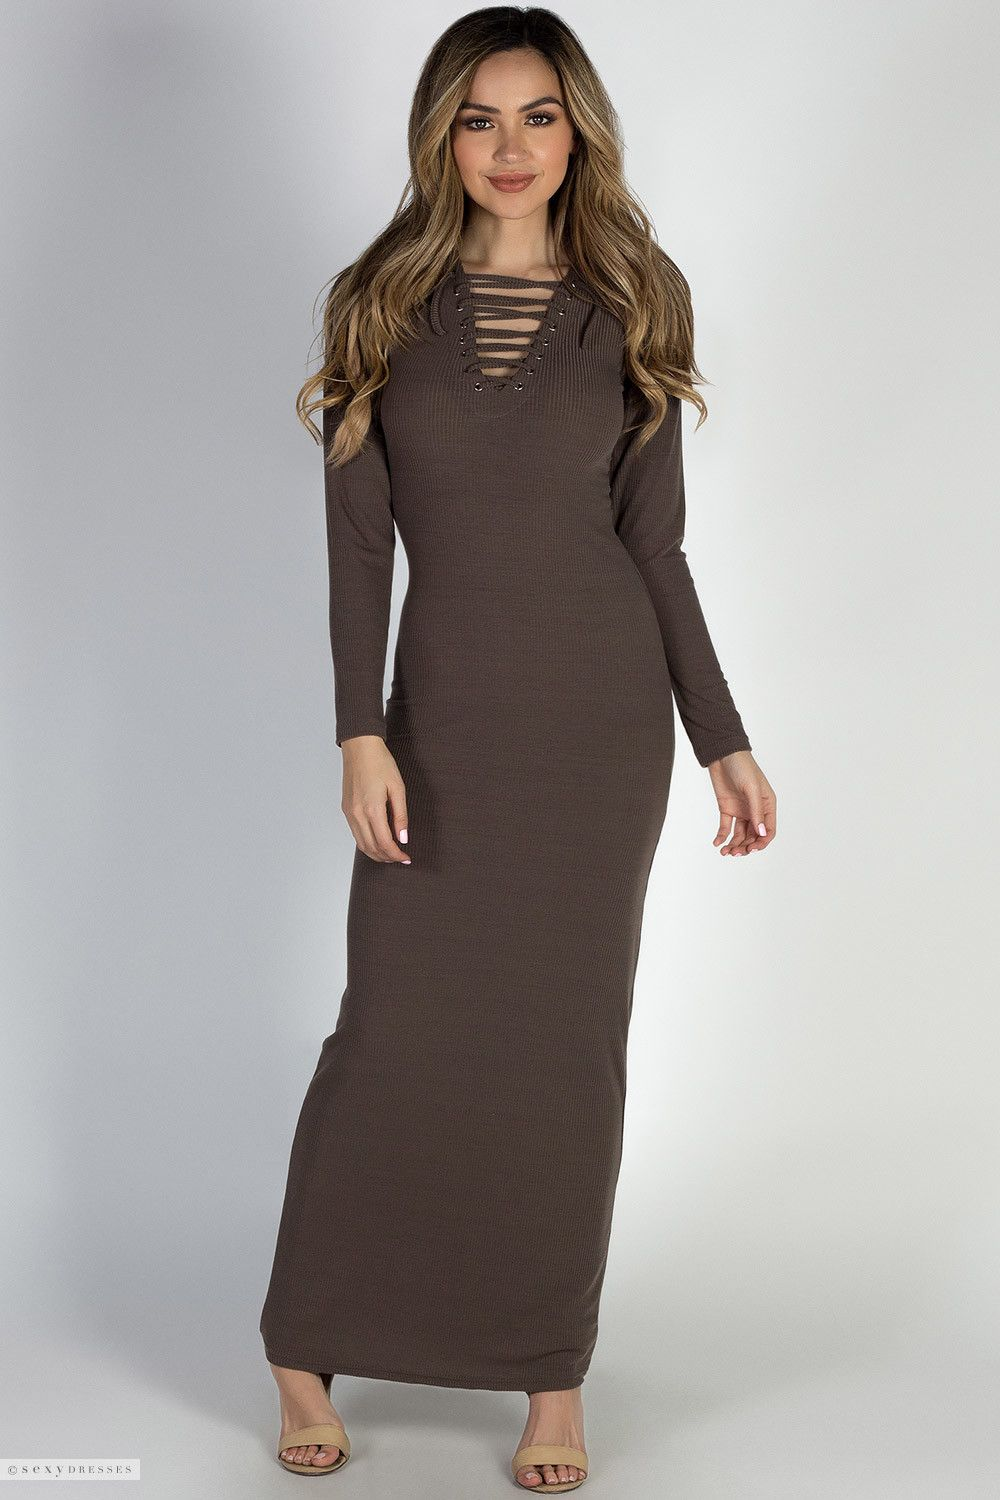 I Got You Cocoa Long Sleeve Lace Up Bodycon Maxi Dress Maxi Dress Bodycon Maxi Dresses Dresses [ 1500 x 1000 Pixel ]